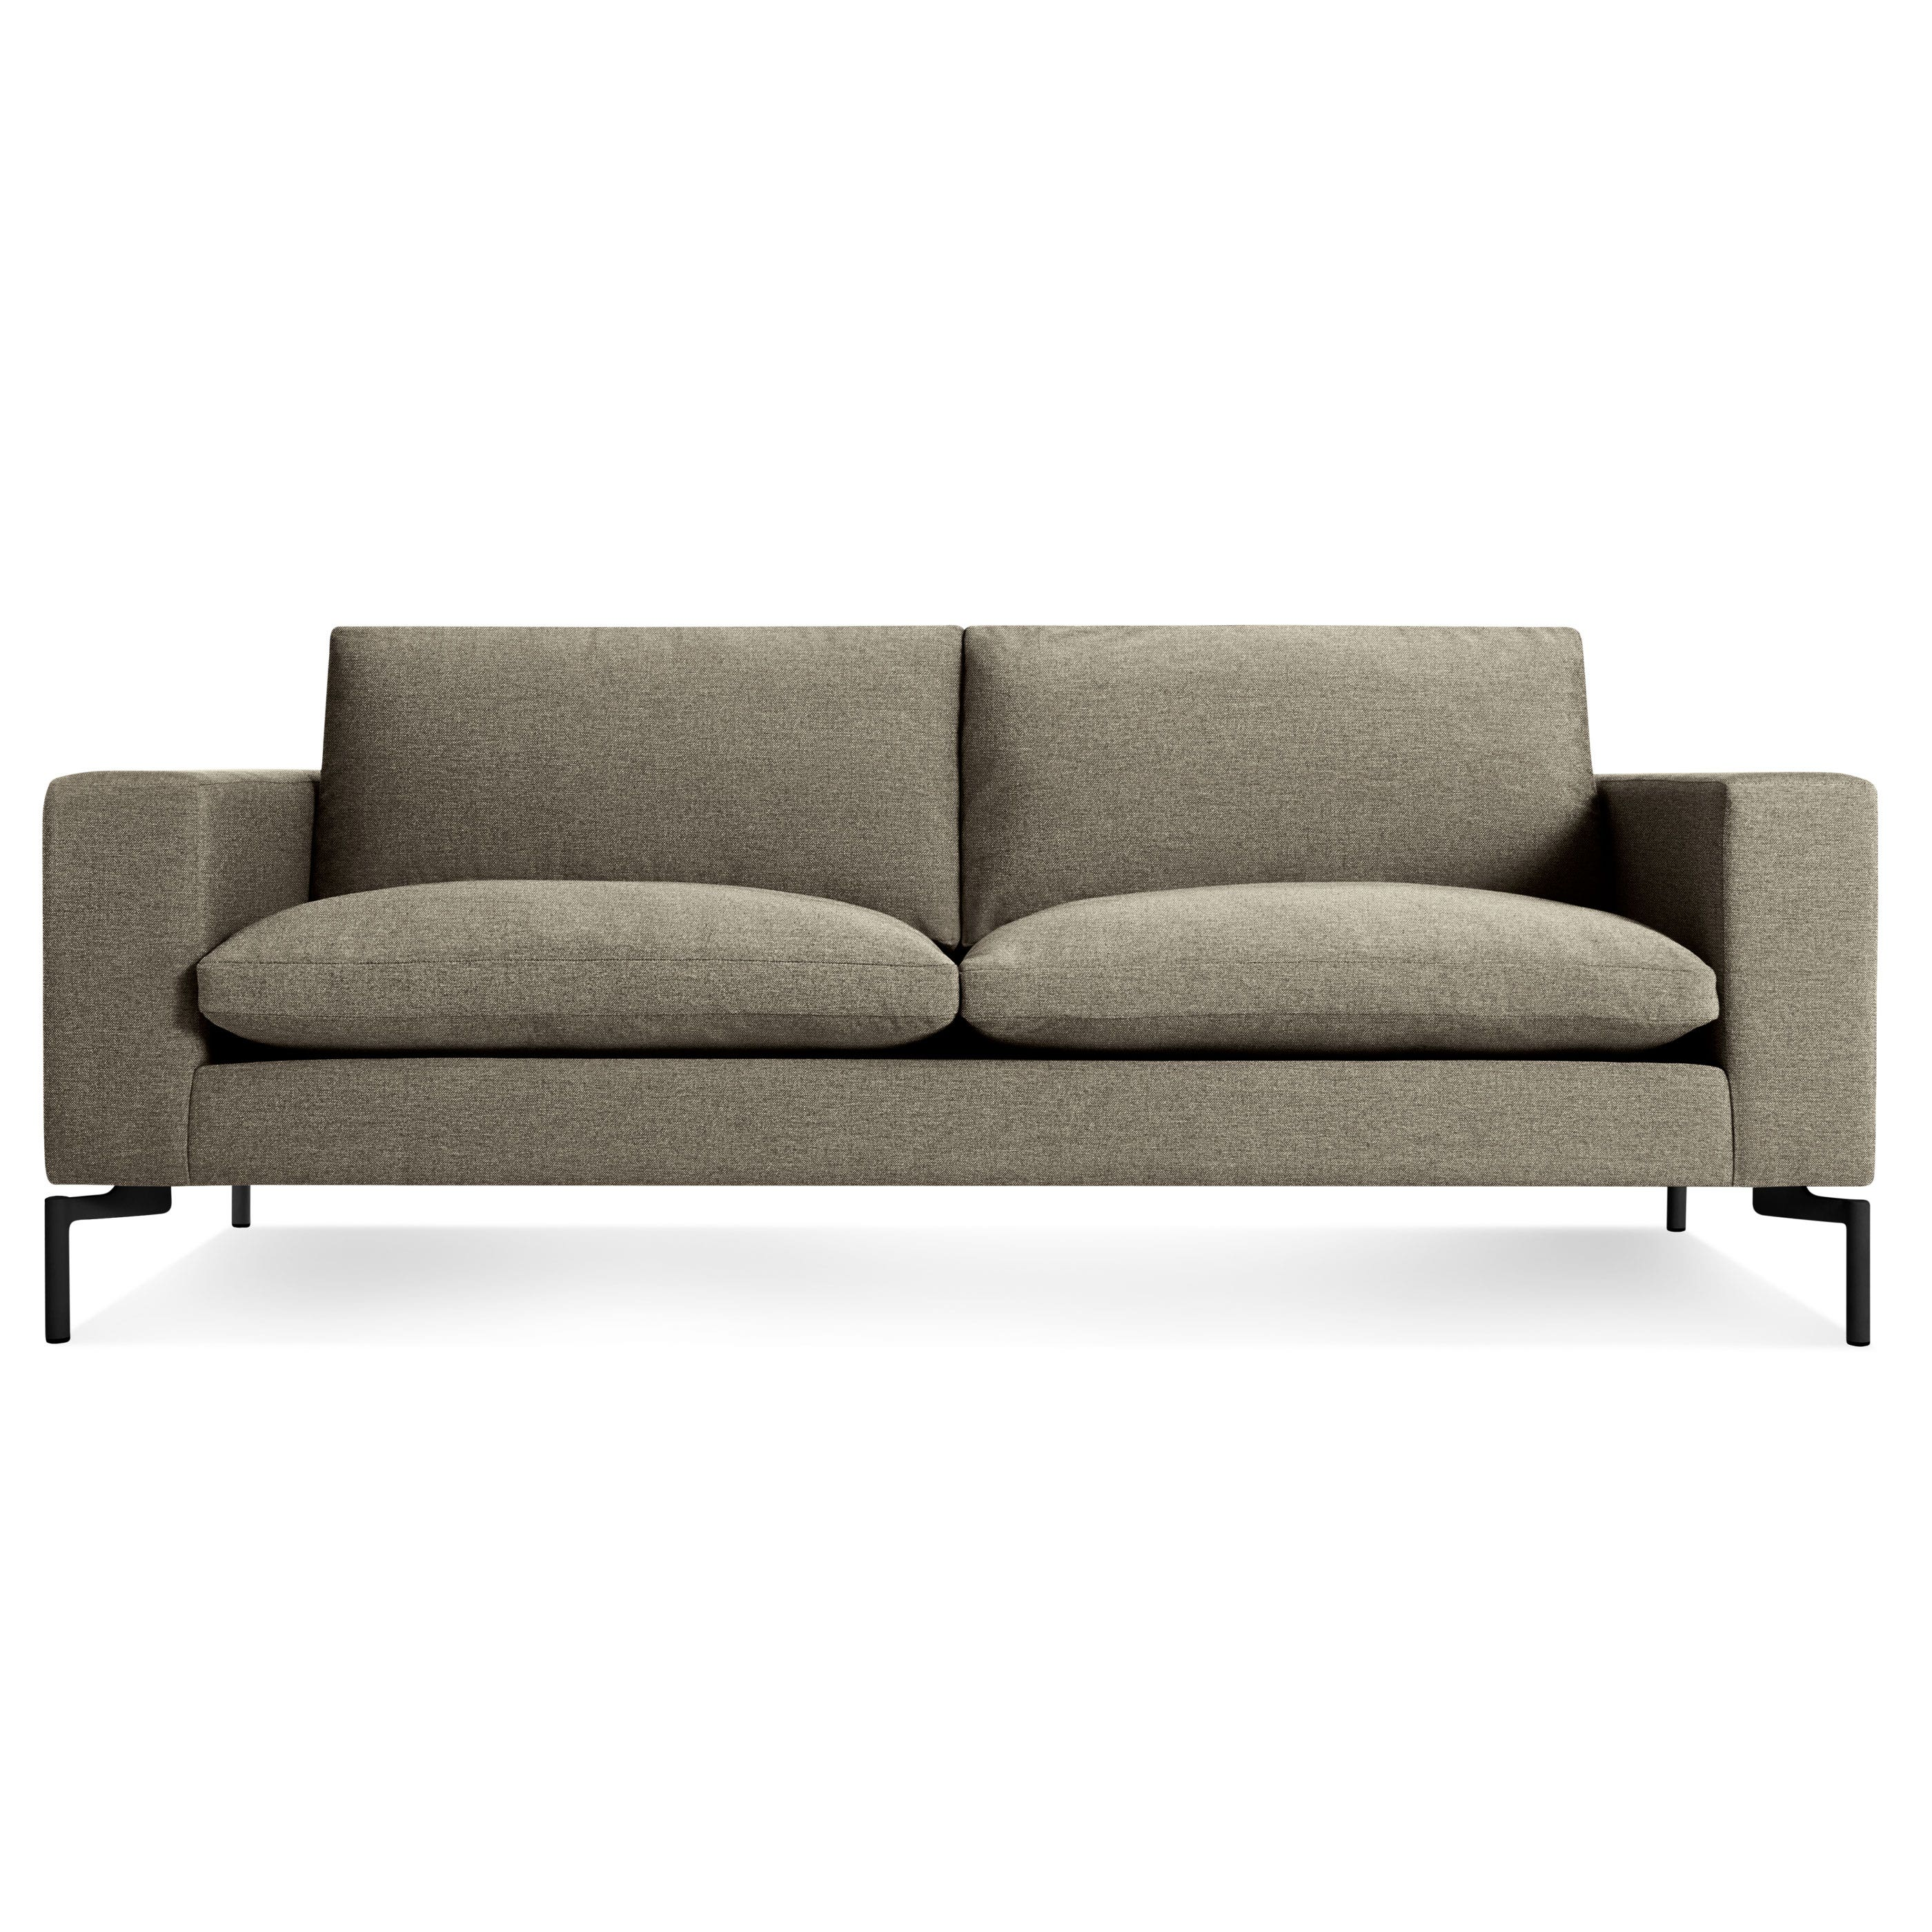 "New Standard 78"" Sofa Modern Fabric Sofas"